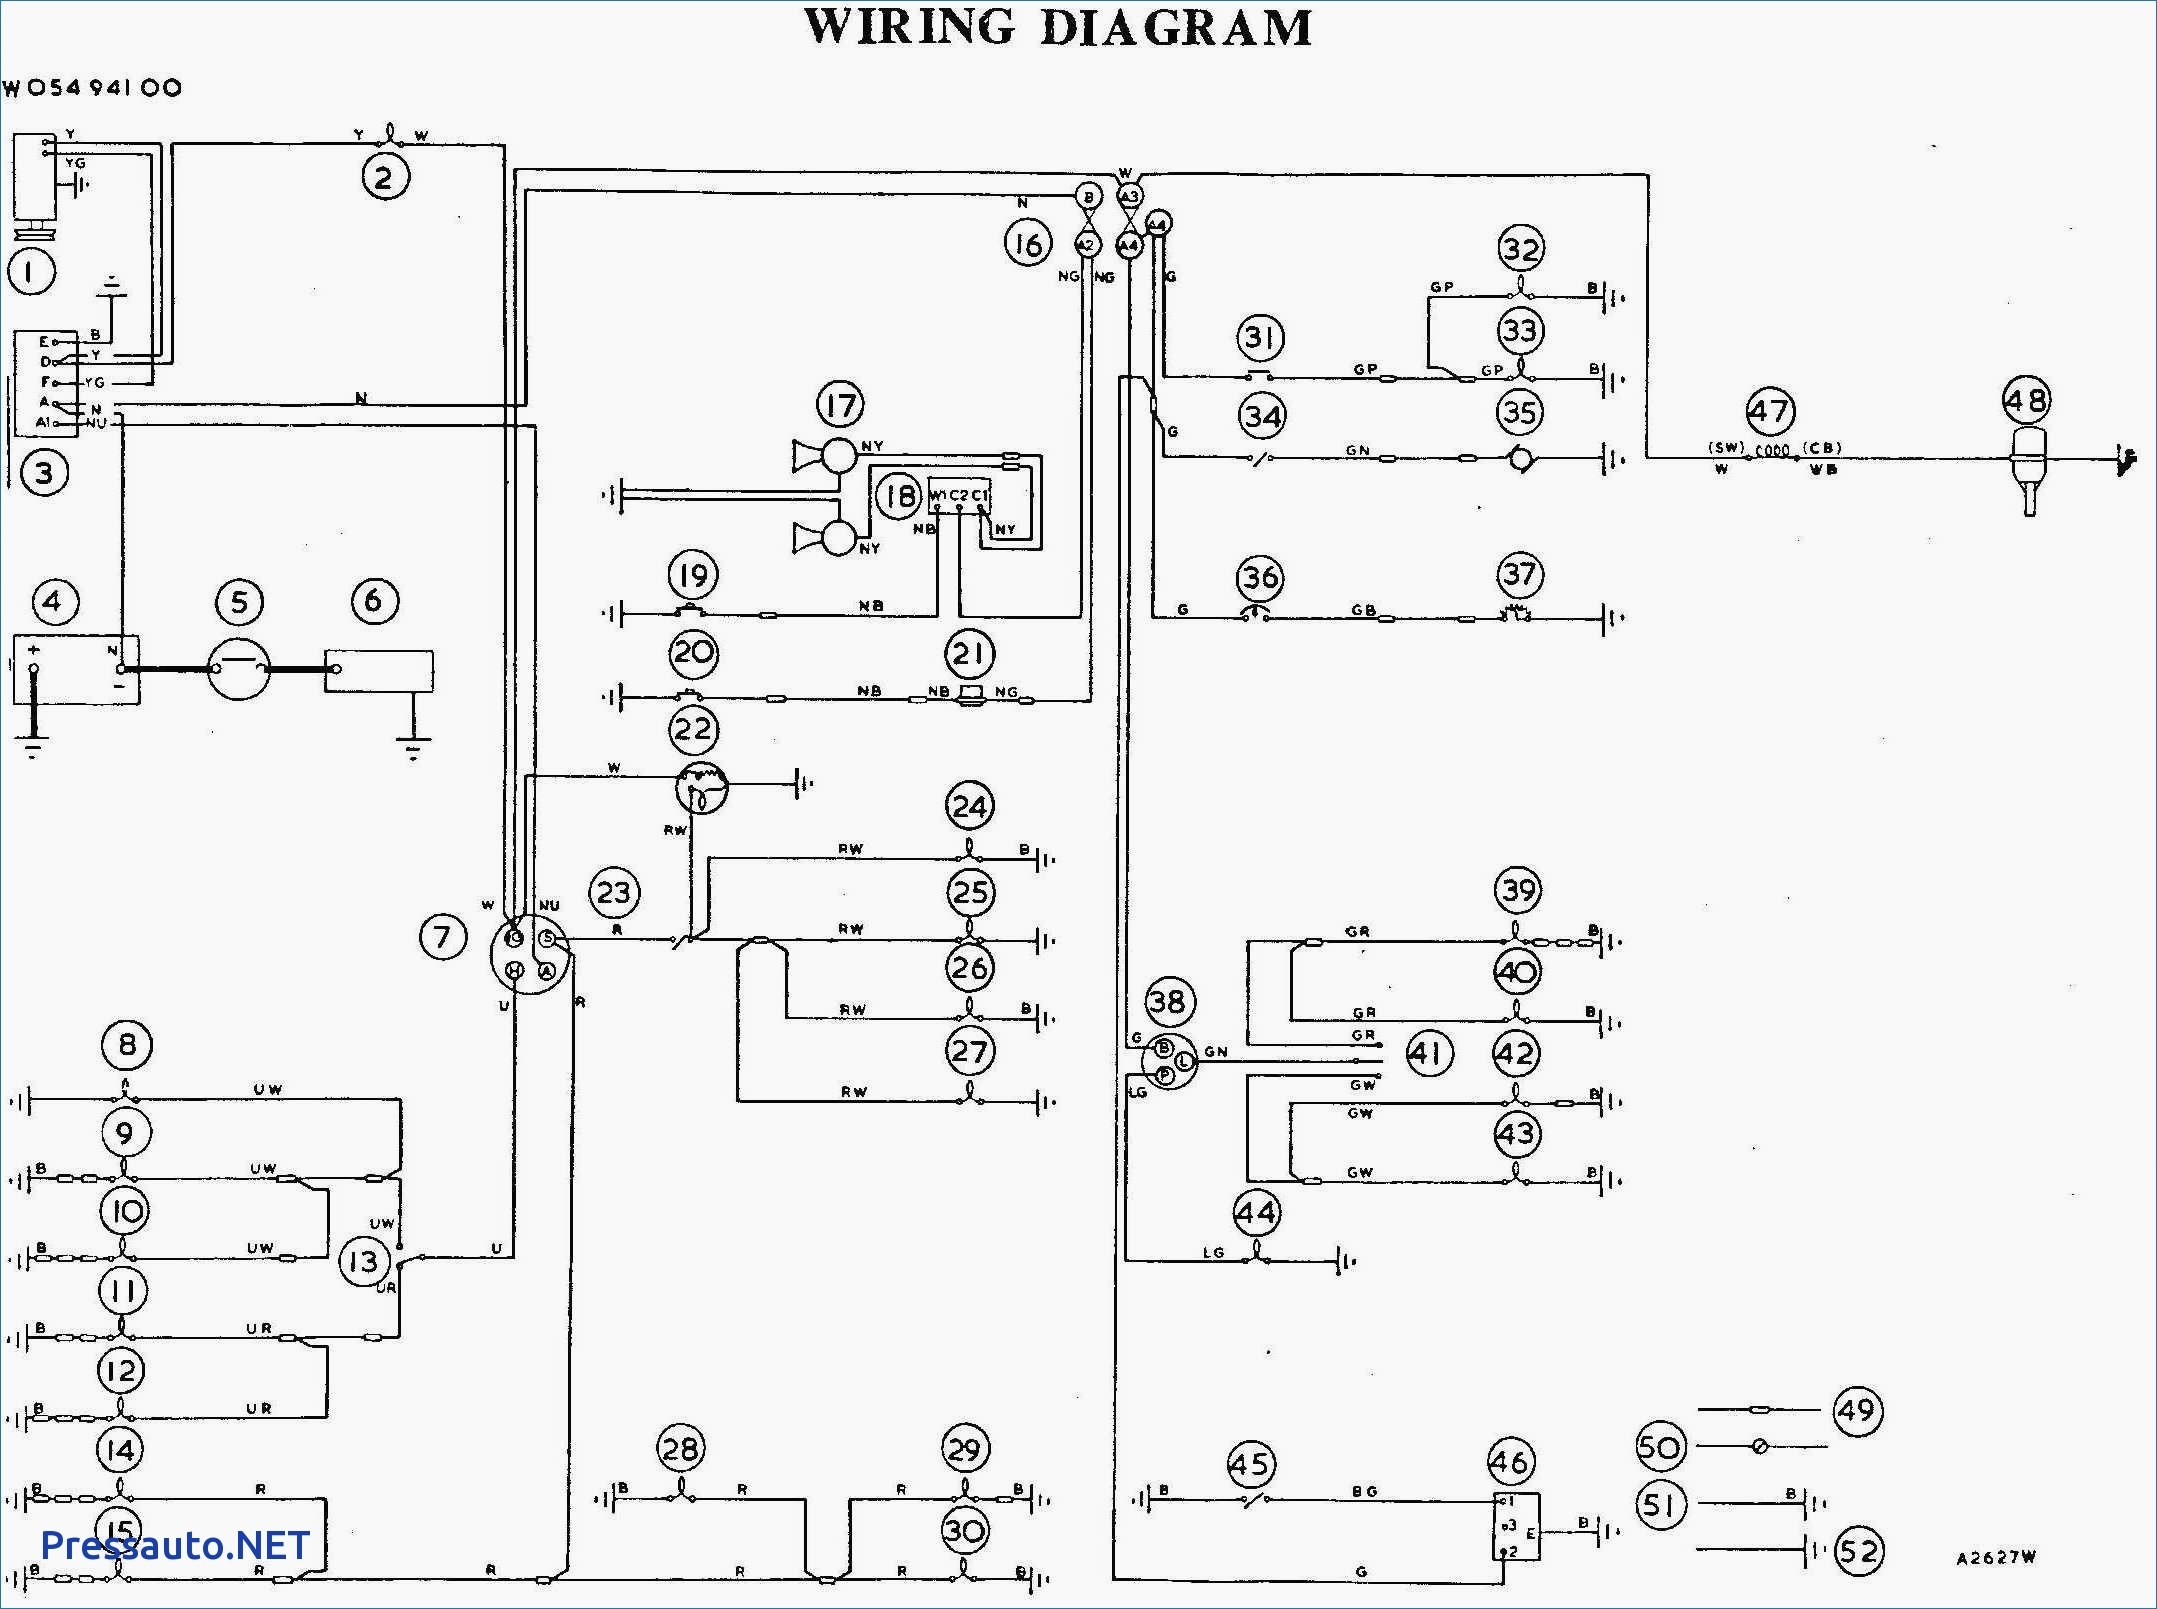 220 Sub Panel Wiring Diagram